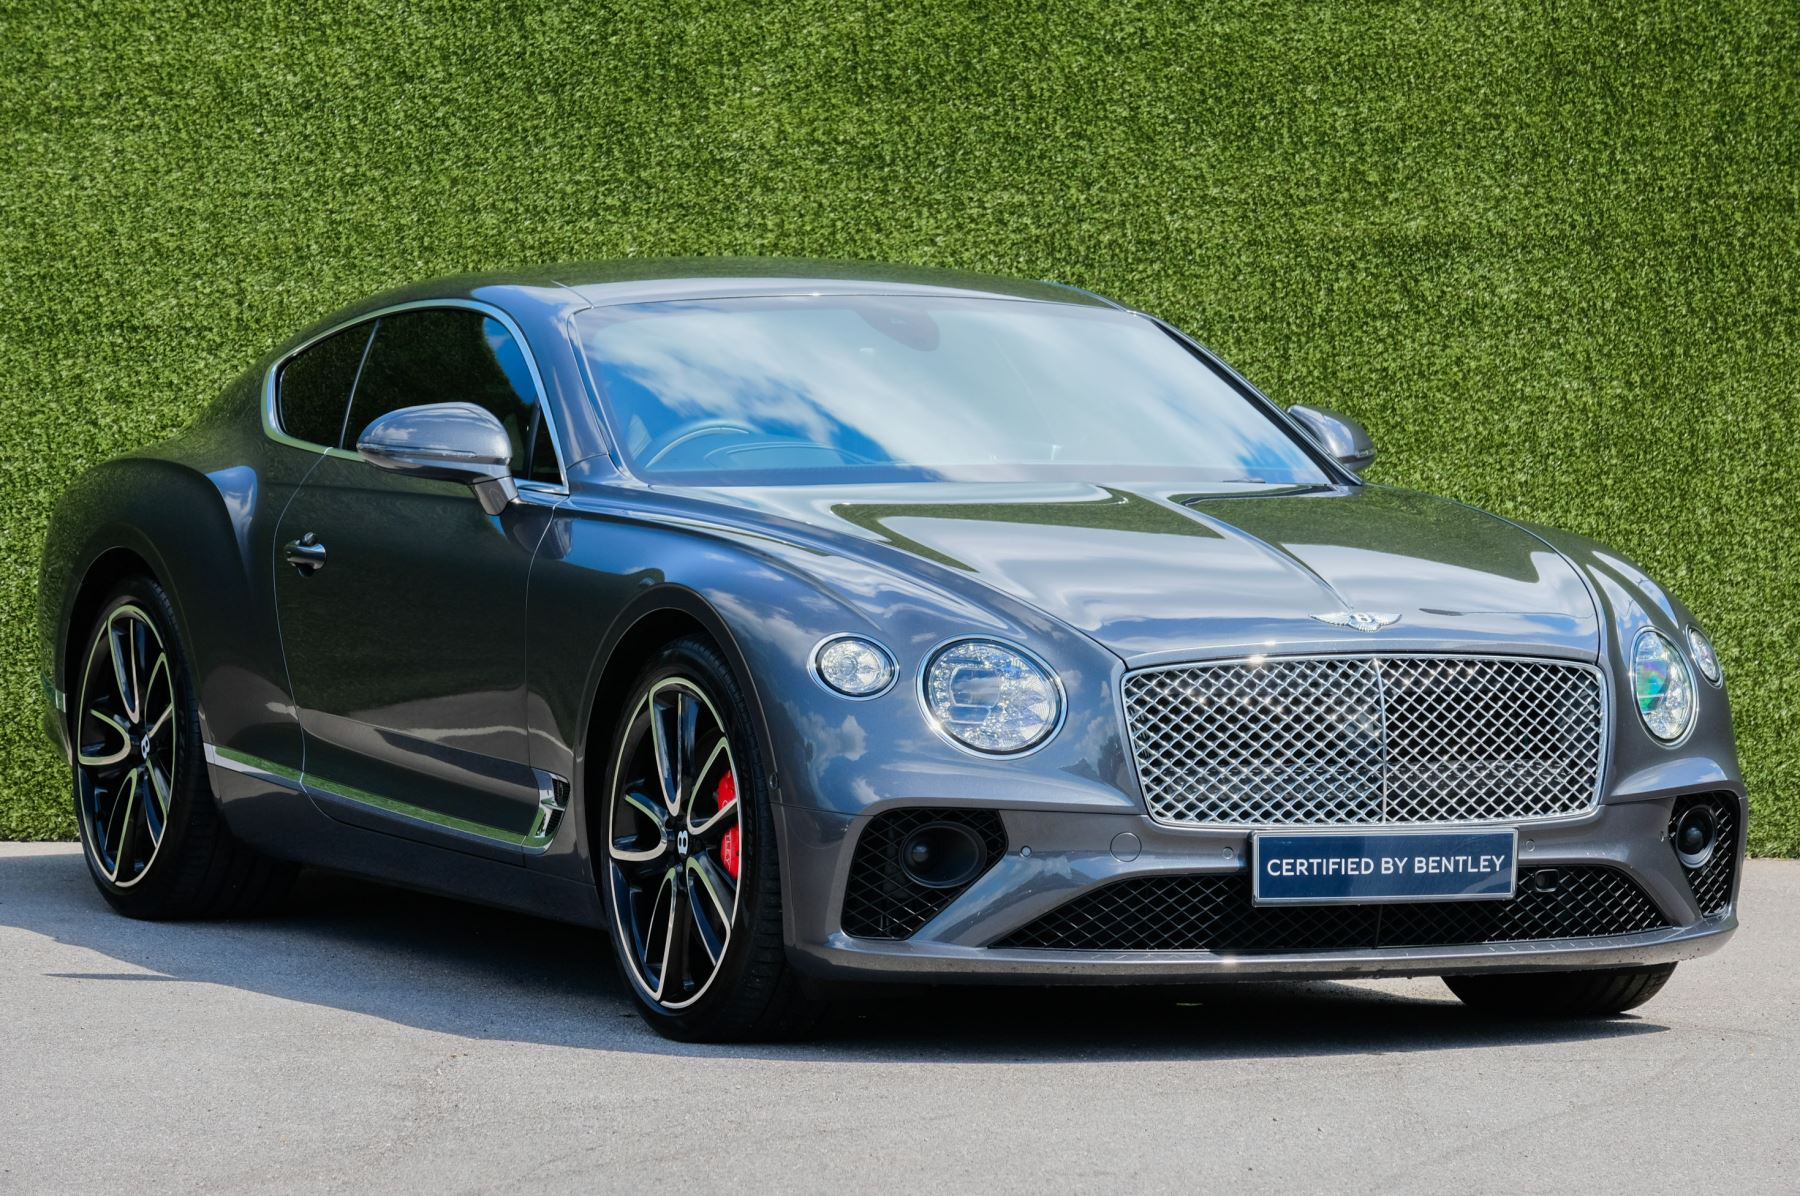 Bentley Continental GT 6.0 W12 - Mulliner Driving Specification image 1